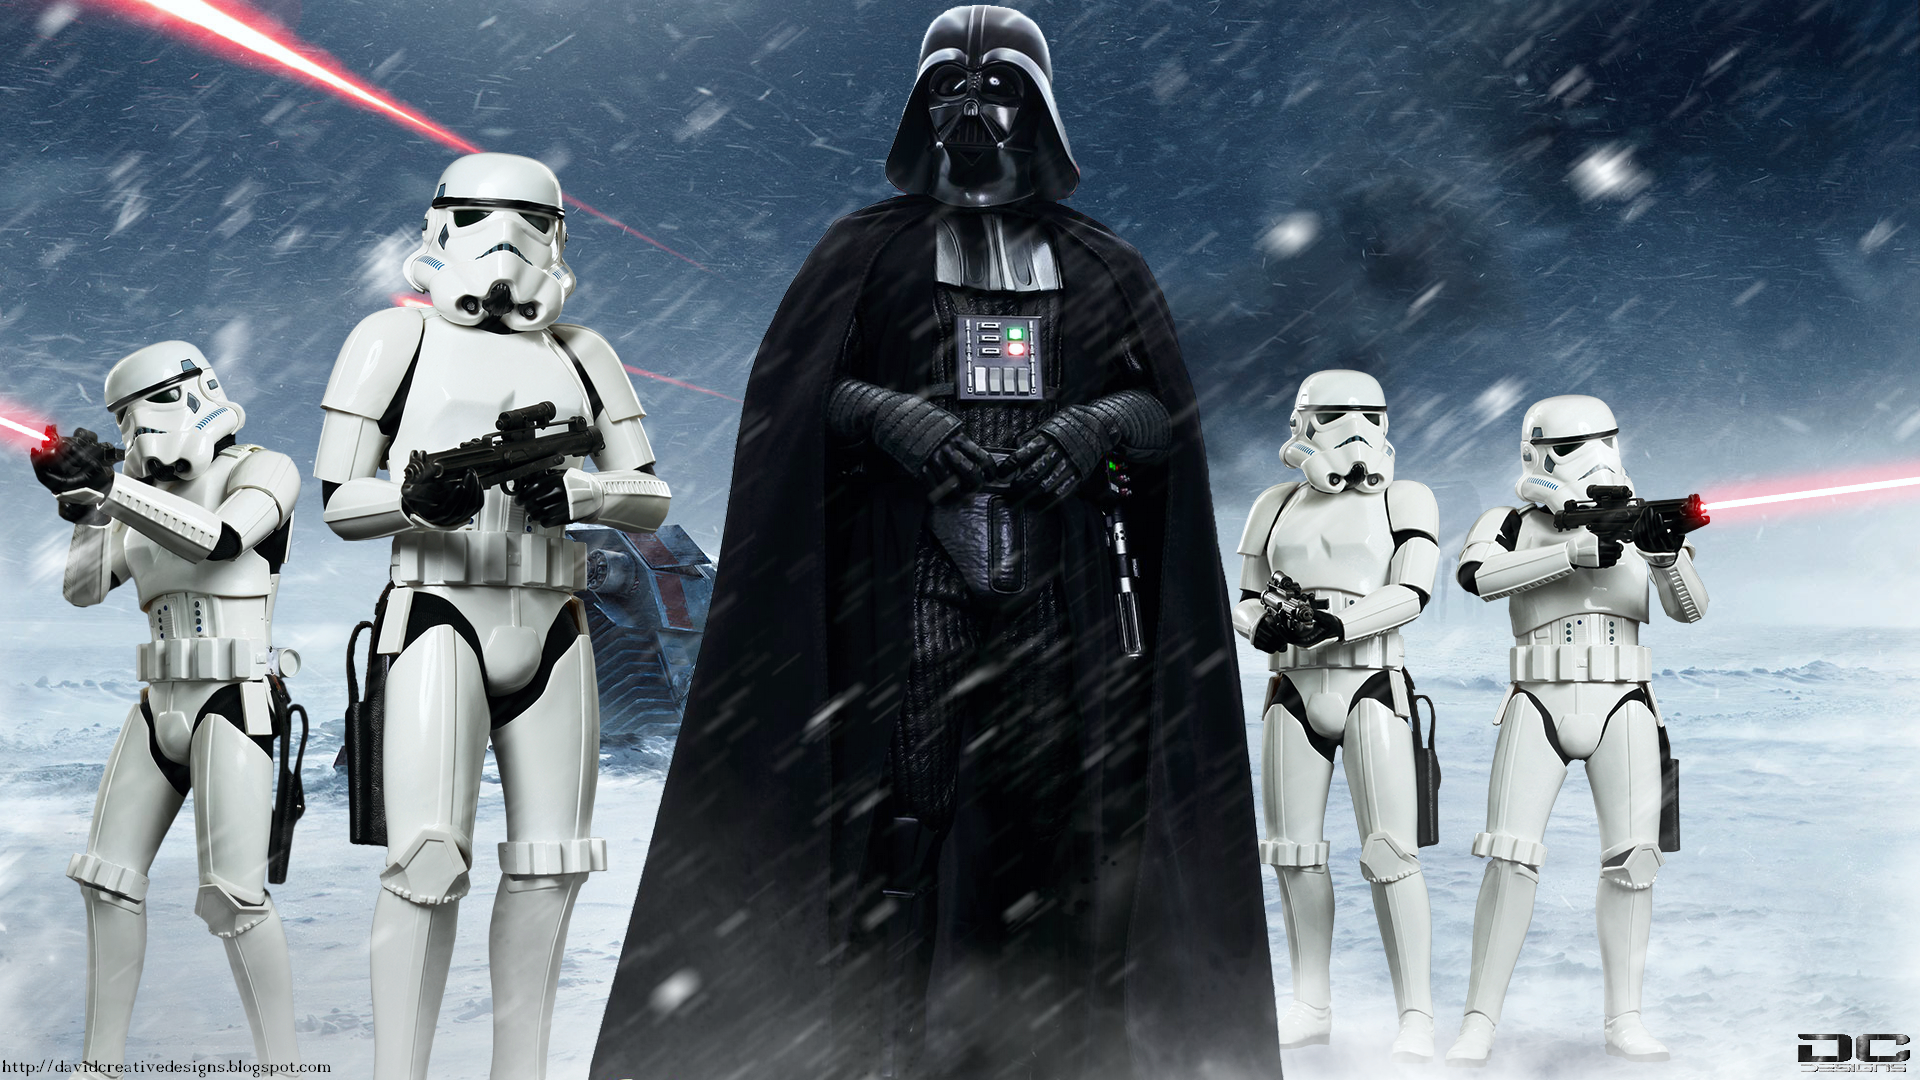 248 Darth Vader HD Wallpapers   Backgrounds - Wallpaper Abyss